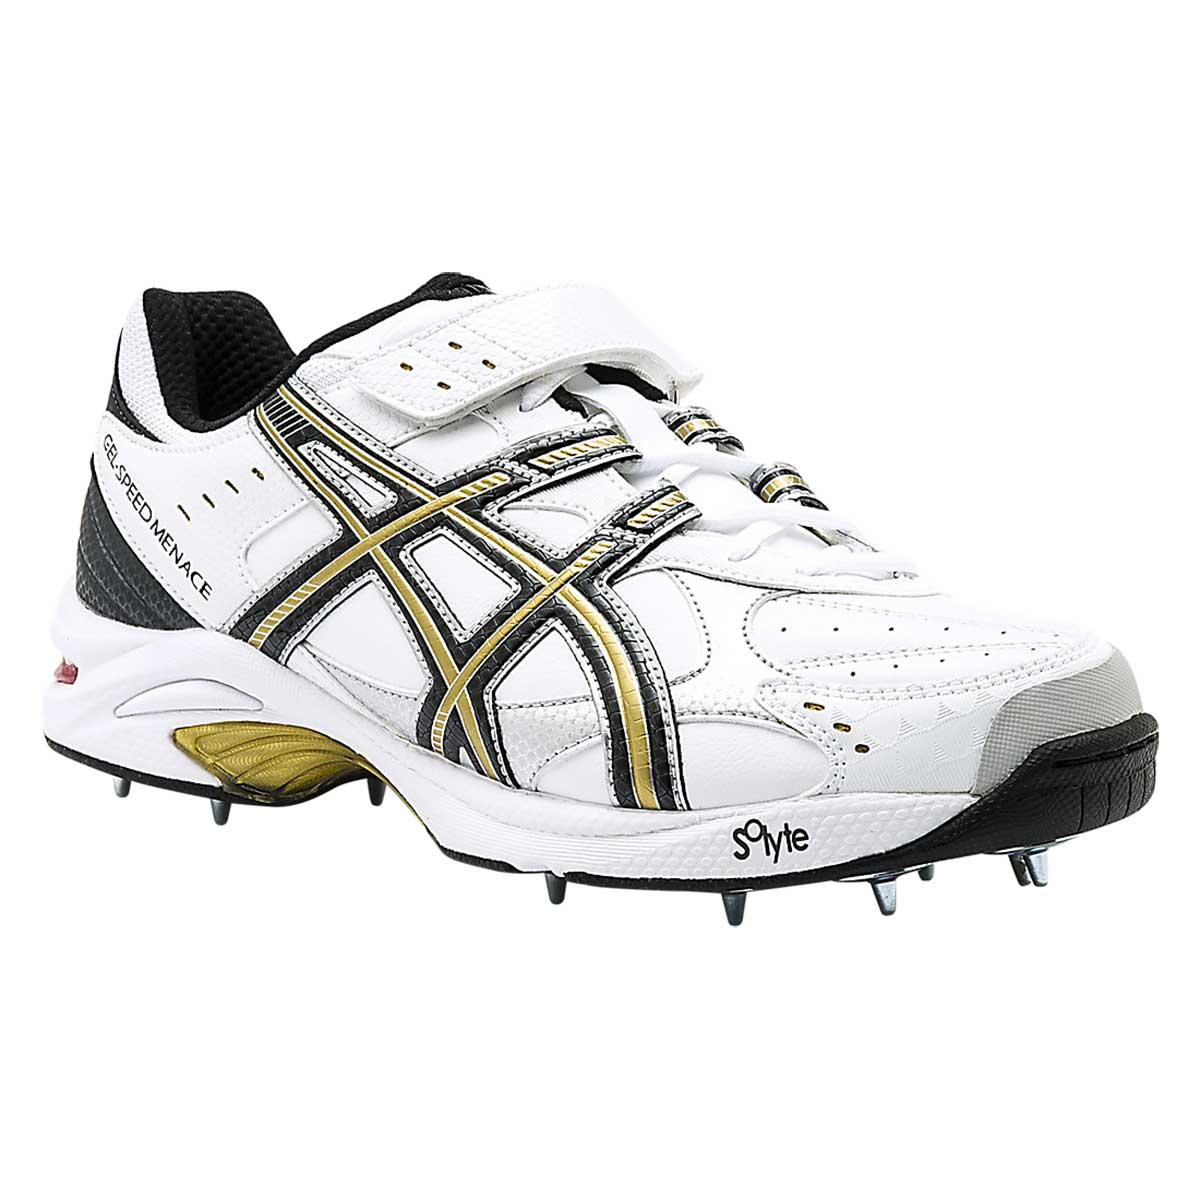 Cricket Shoes, Cricket, Sports, Buy, Asics, Asics Gel-Speed Menace Lo Right  Cricket Shoes (White/Black/Gold)